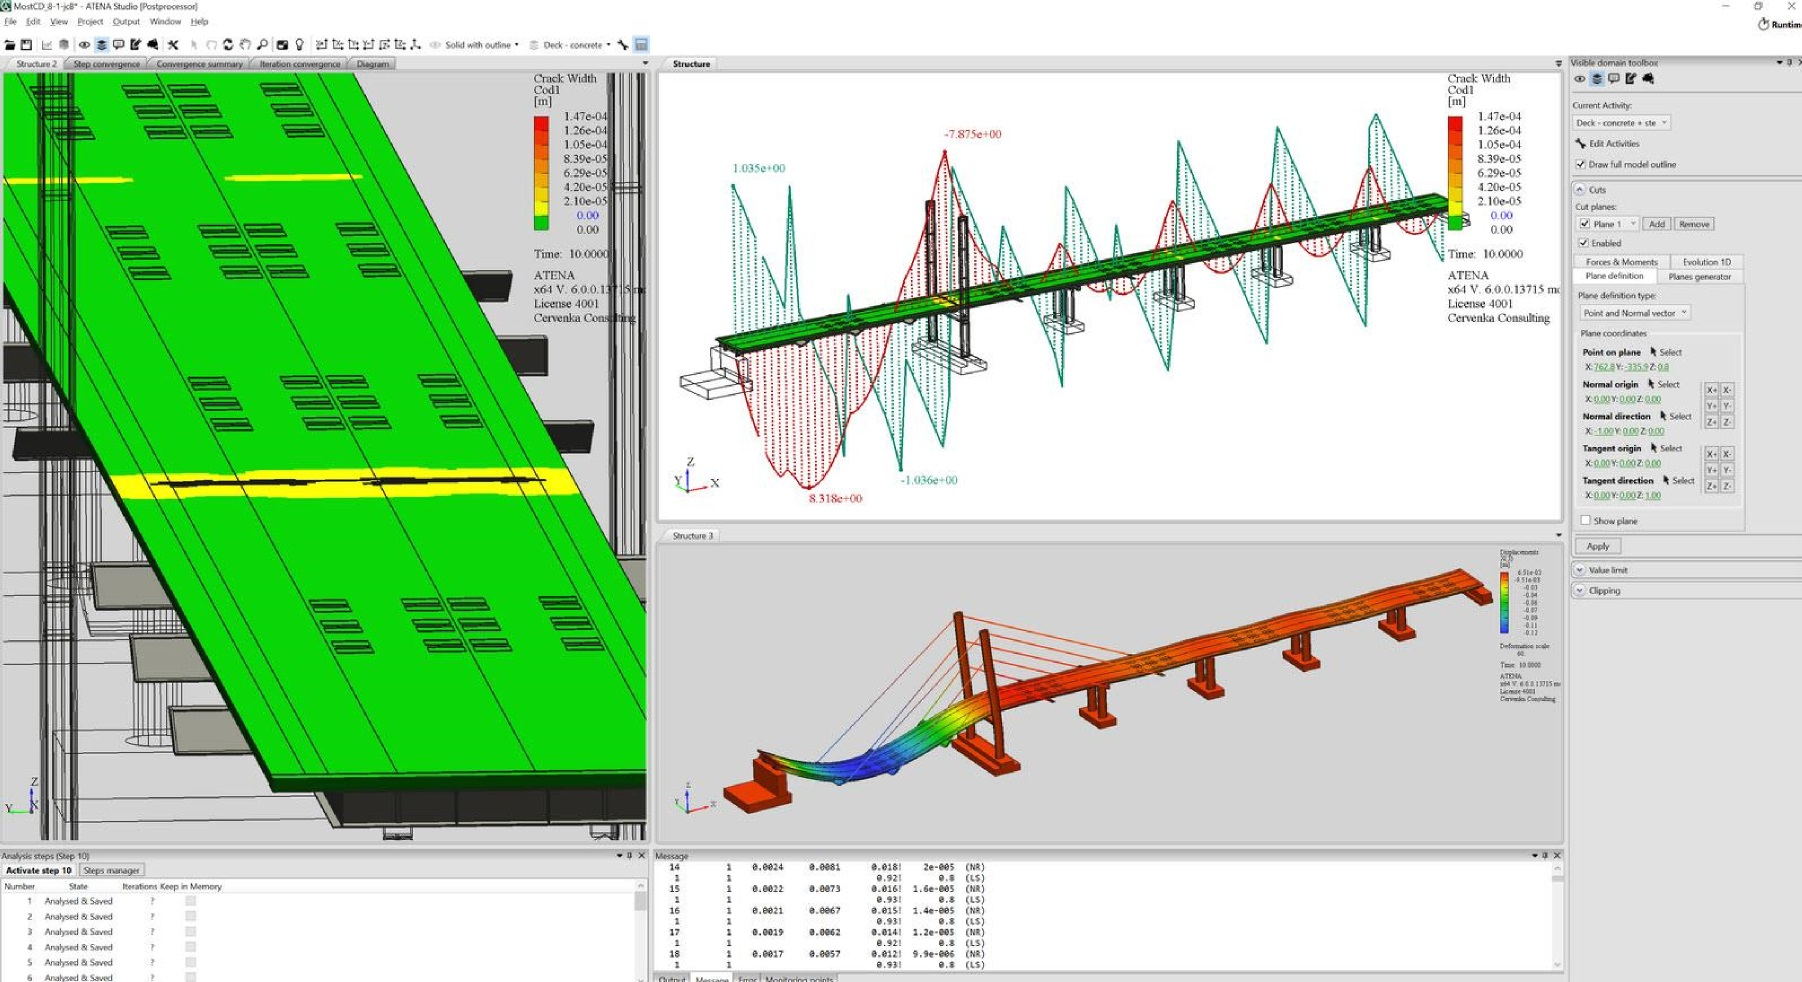 Atena ensoft inc bridge structure multiple output displays including moment and shear diagrams pooptronica Choice Image